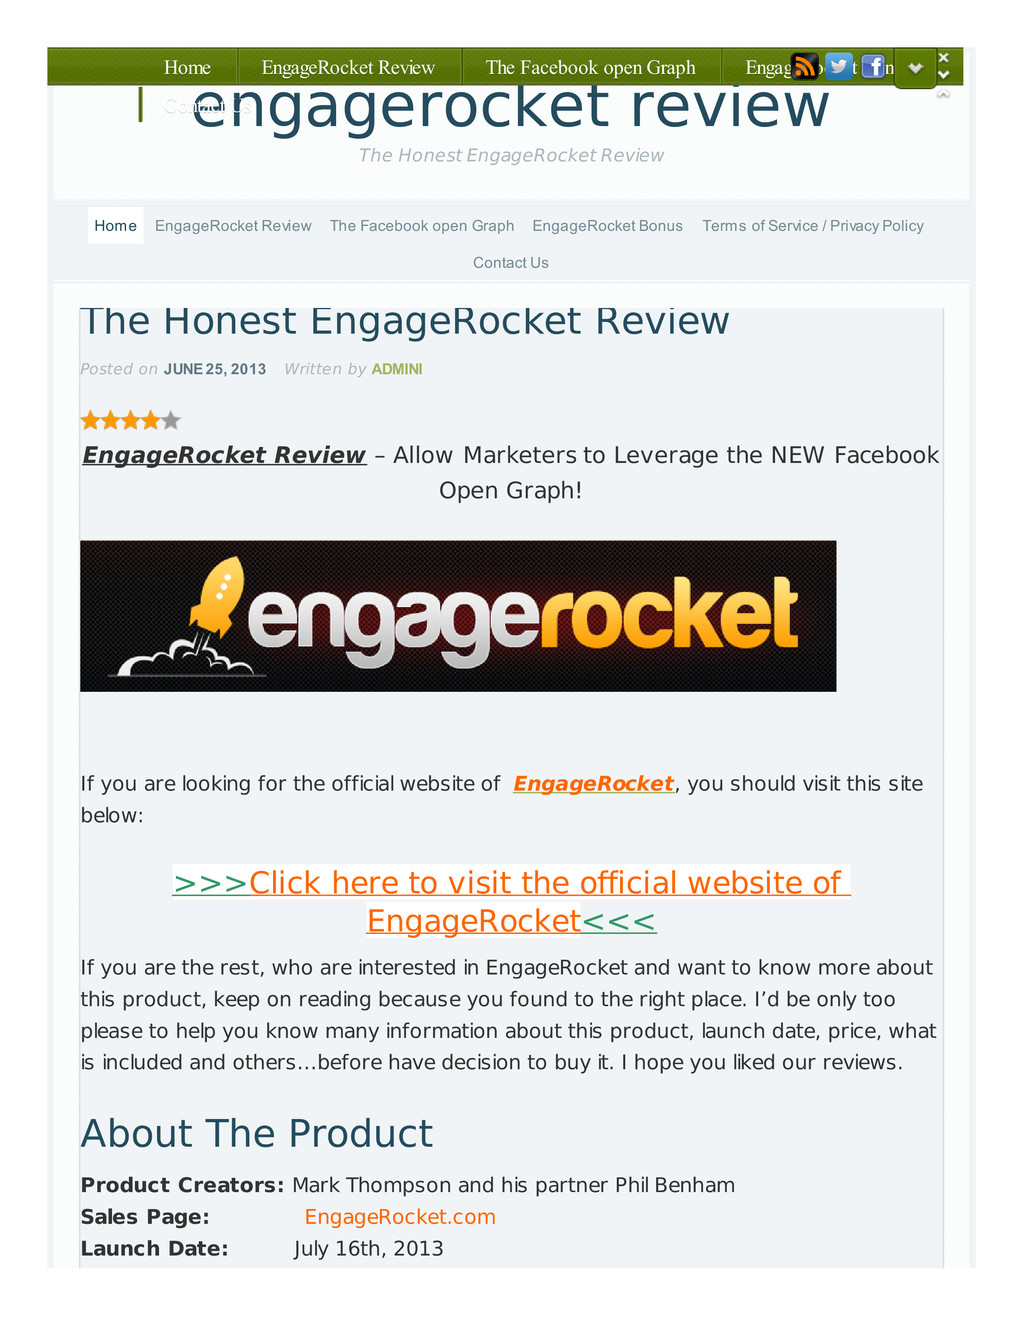 The Honest EngageRocket Review Posted on JUNE 2...